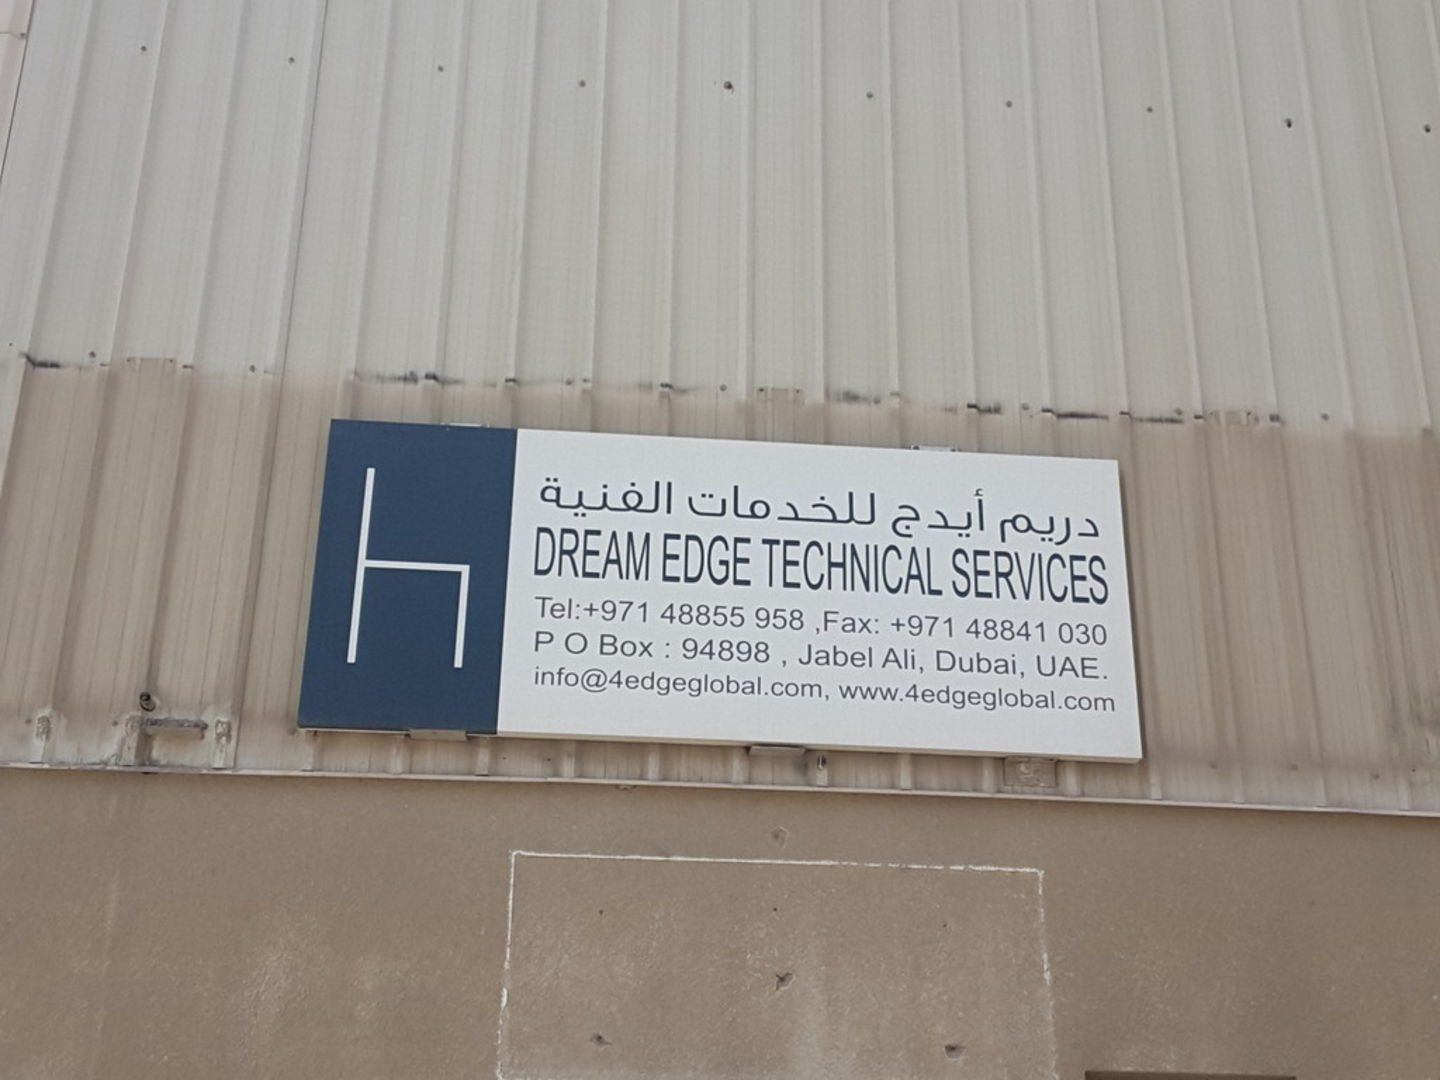 HiDubai-business-dream-edge-technical-services-construction-heavy-industries-construction-renovation-jebel-ali-industrial-1-dubai-2